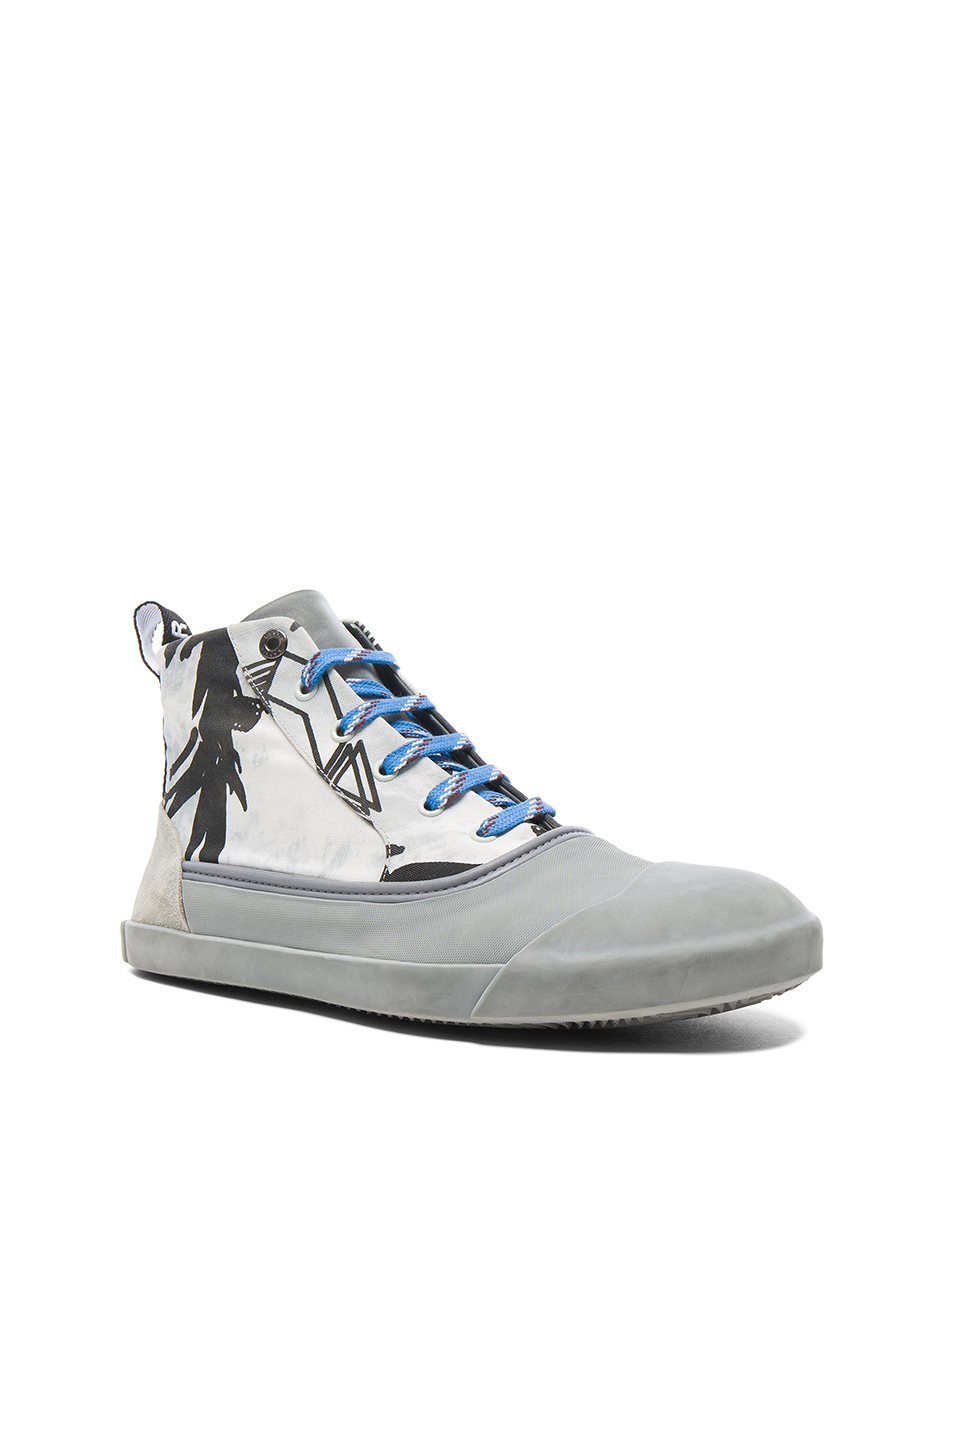 Photo of Lanvin Printed Canvas Mid Top Sneakers in Gray,Abstract - shop Lanvin menswear